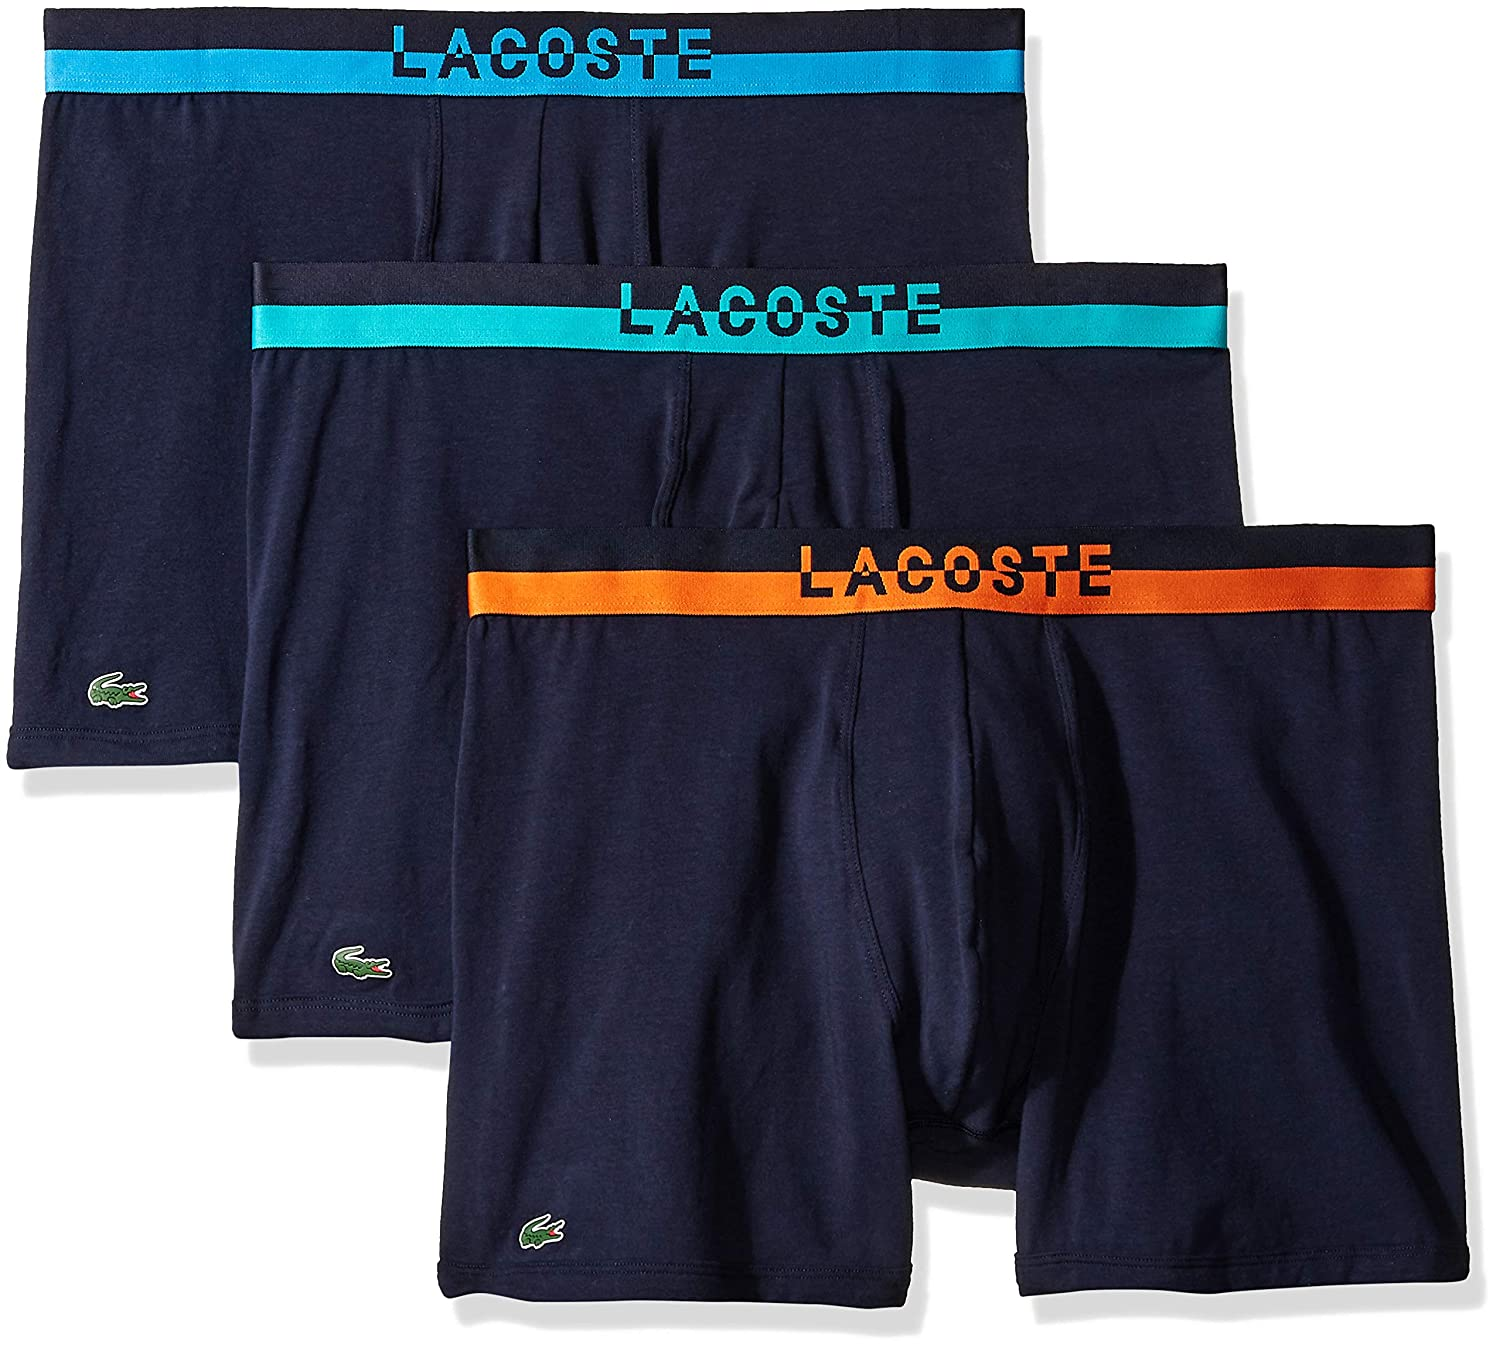 b37637285 Lacoste Men s Cotton Stretch Boxer Brief Underwear